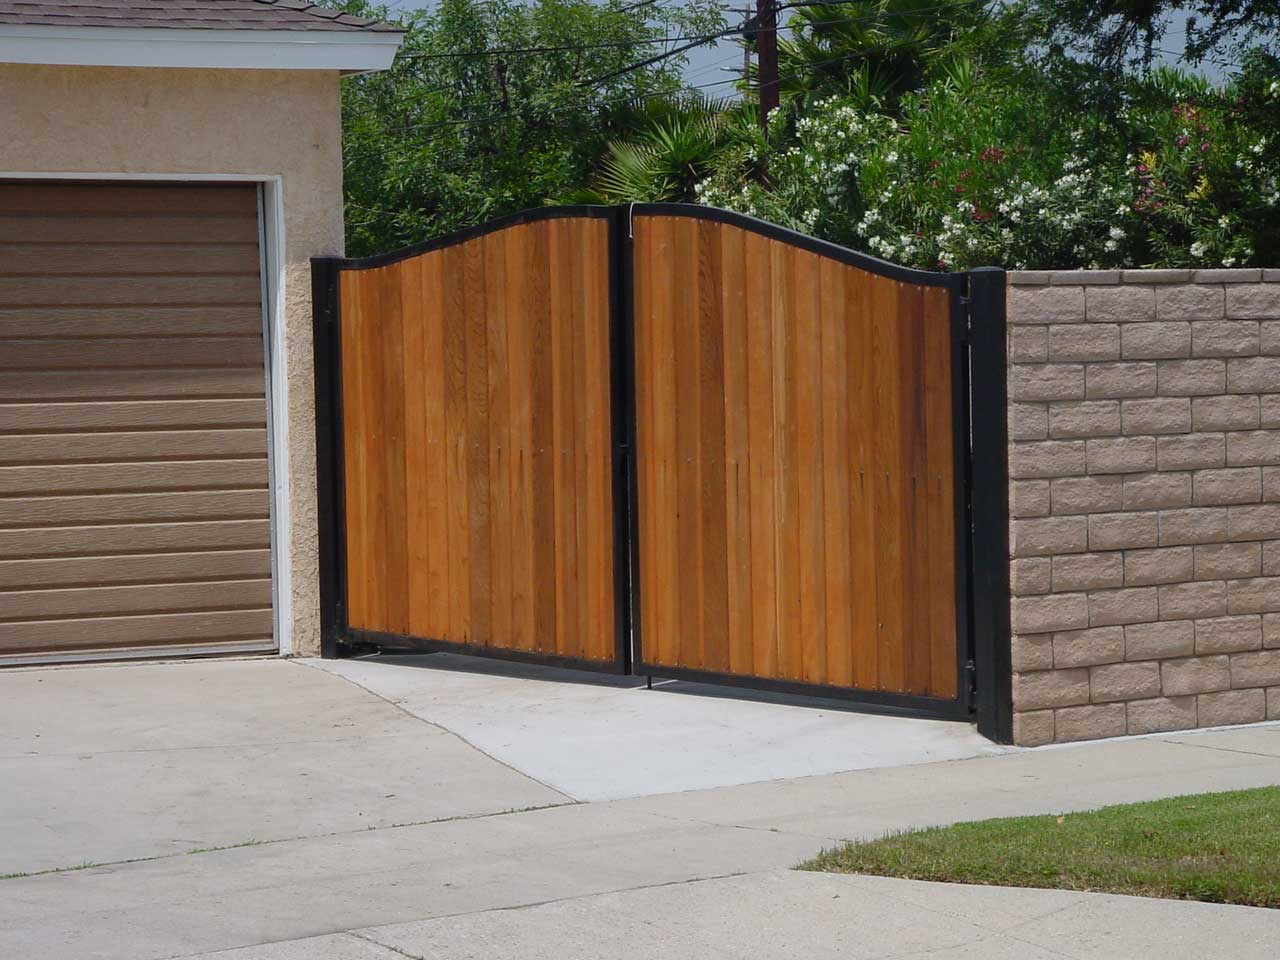 Charming Modern Fence Designs Metal Of Cool Garden And Front Yard